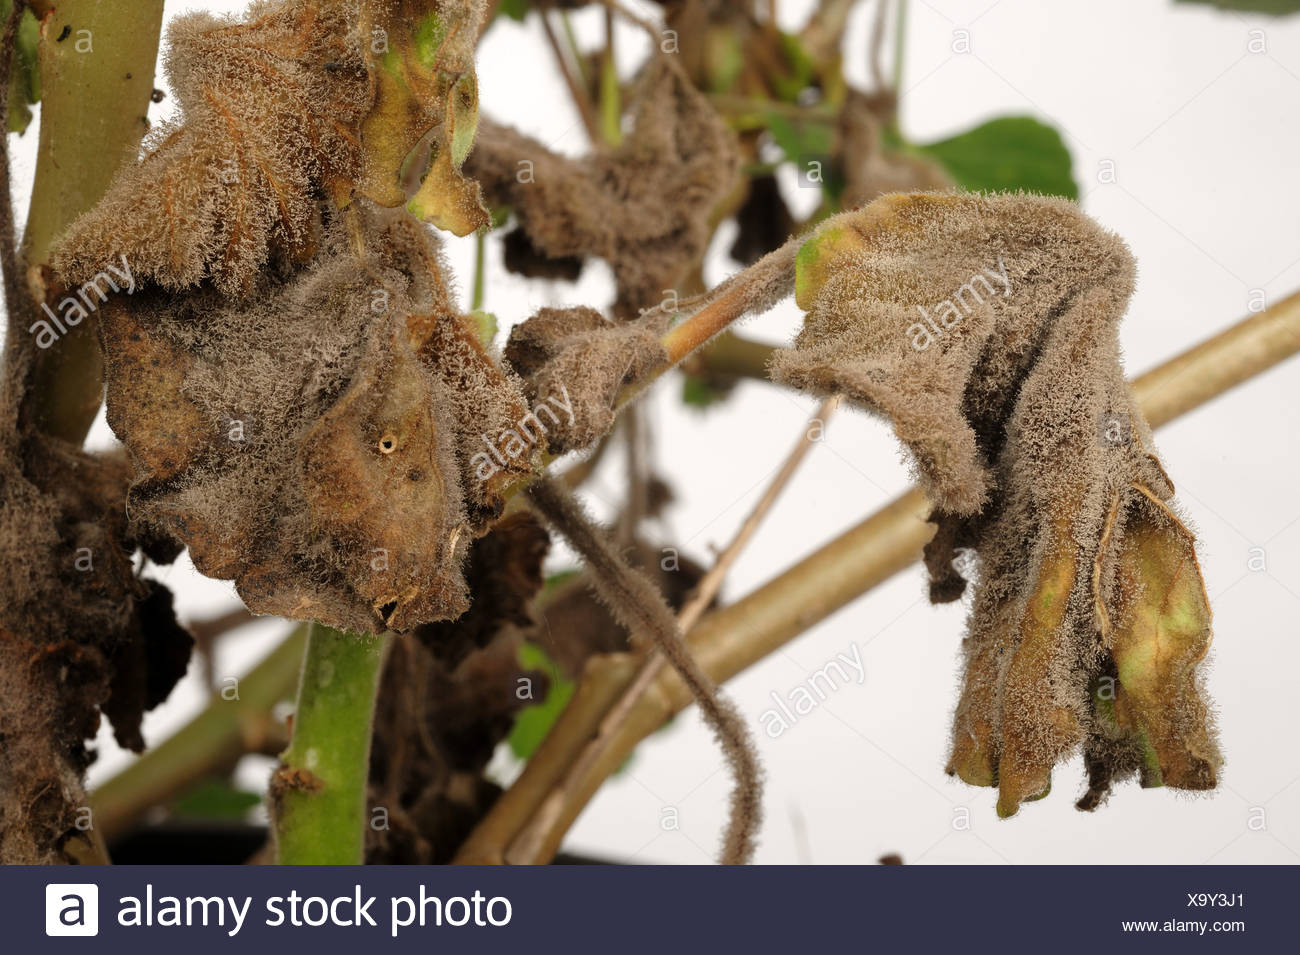 botrytis grey mould gray mold stockfotos botrytis grey mould gray mold bilder alamy. Black Bedroom Furniture Sets. Home Design Ideas